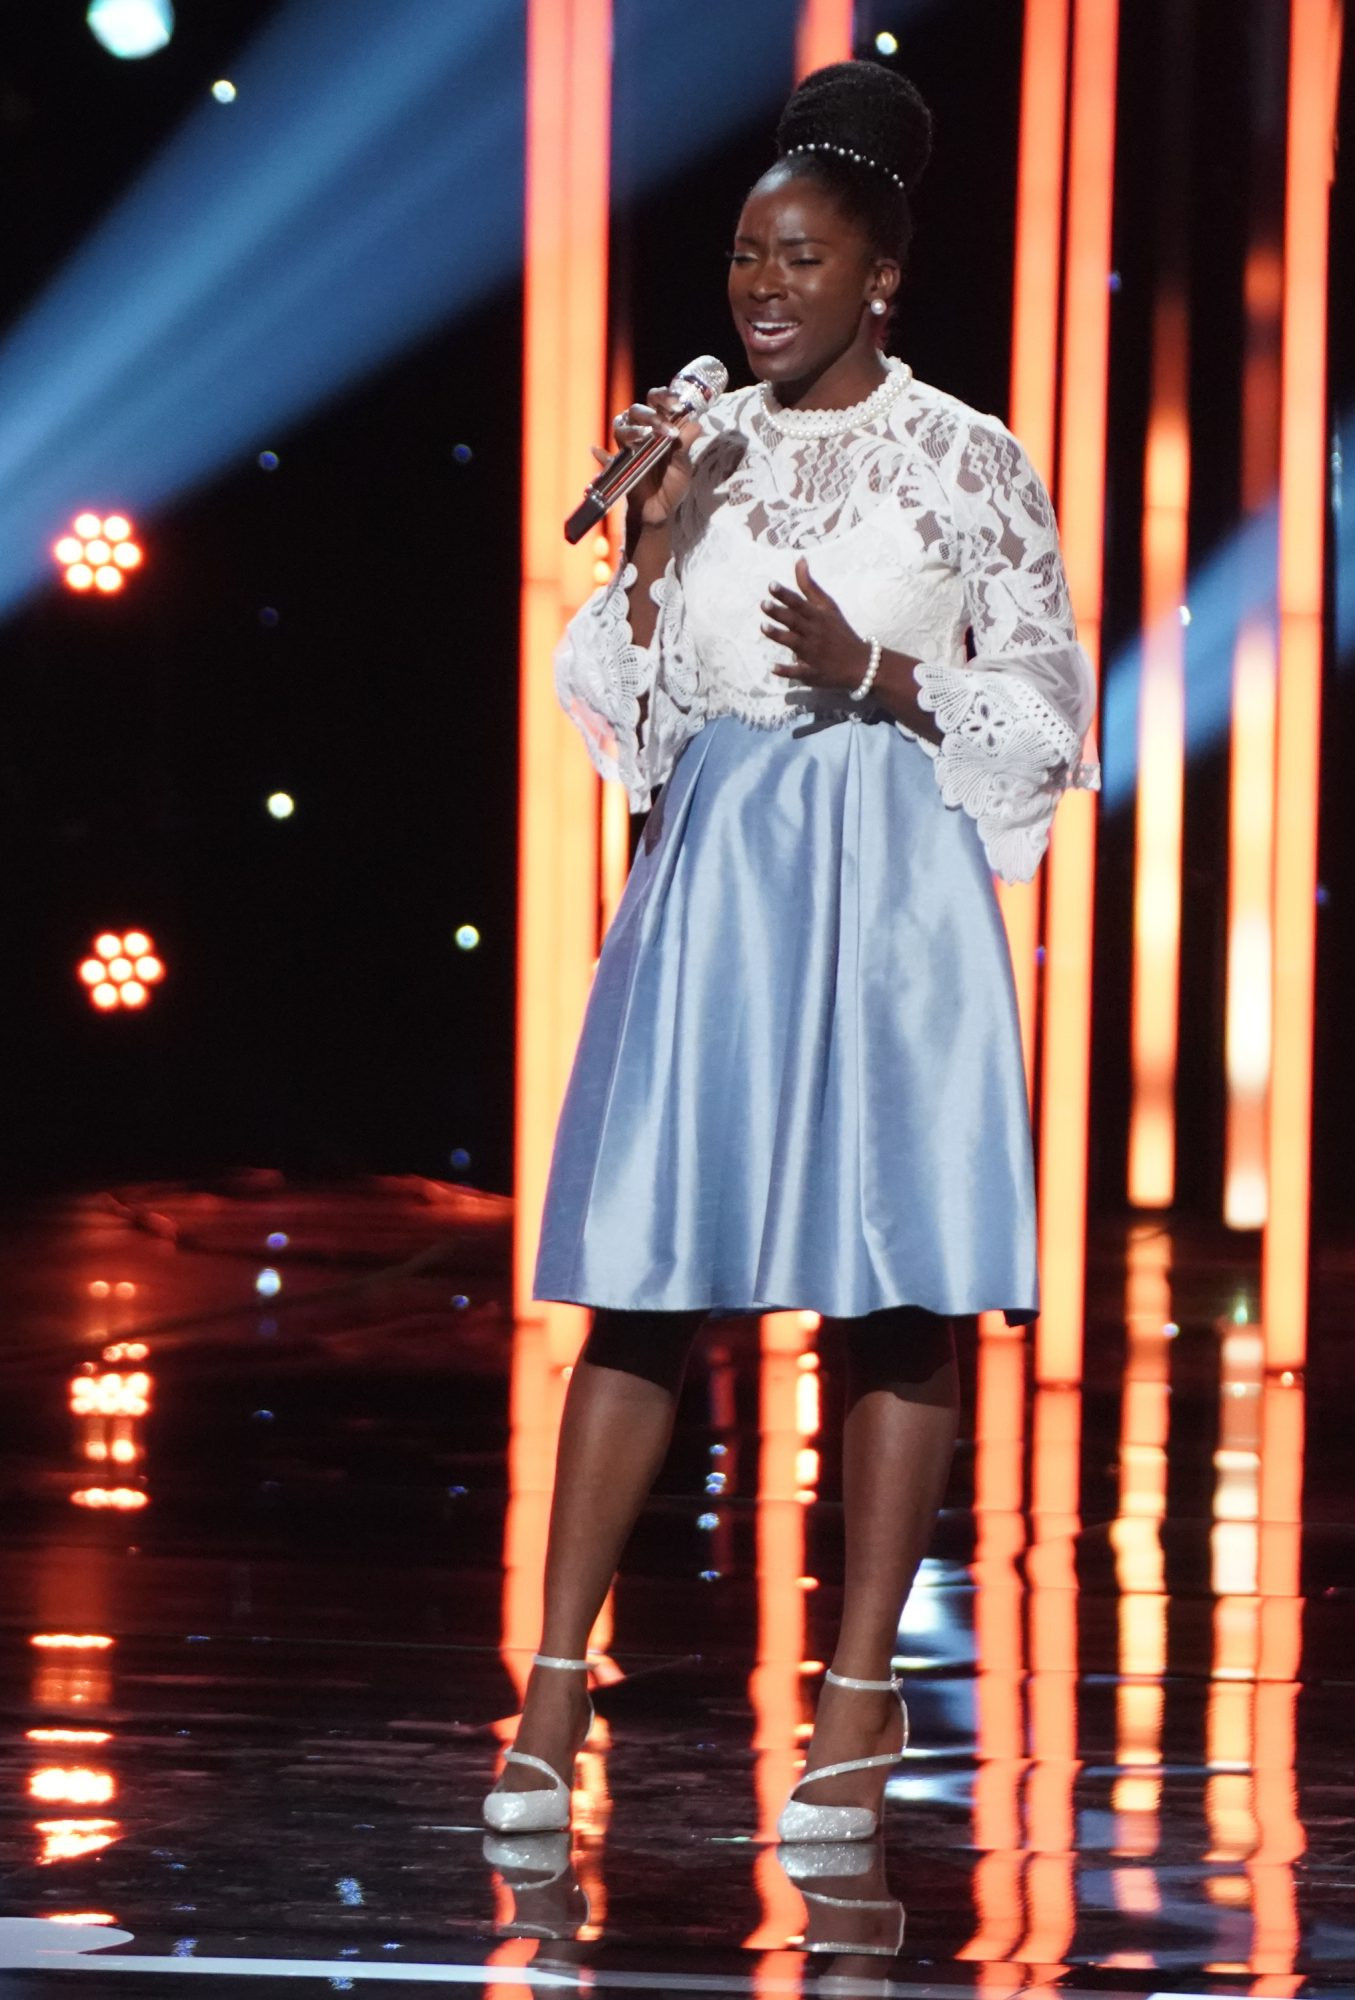 Watch the terrifying moment?American Idol?contestant, Funke Lagoke passes out on stage while receiving Judges